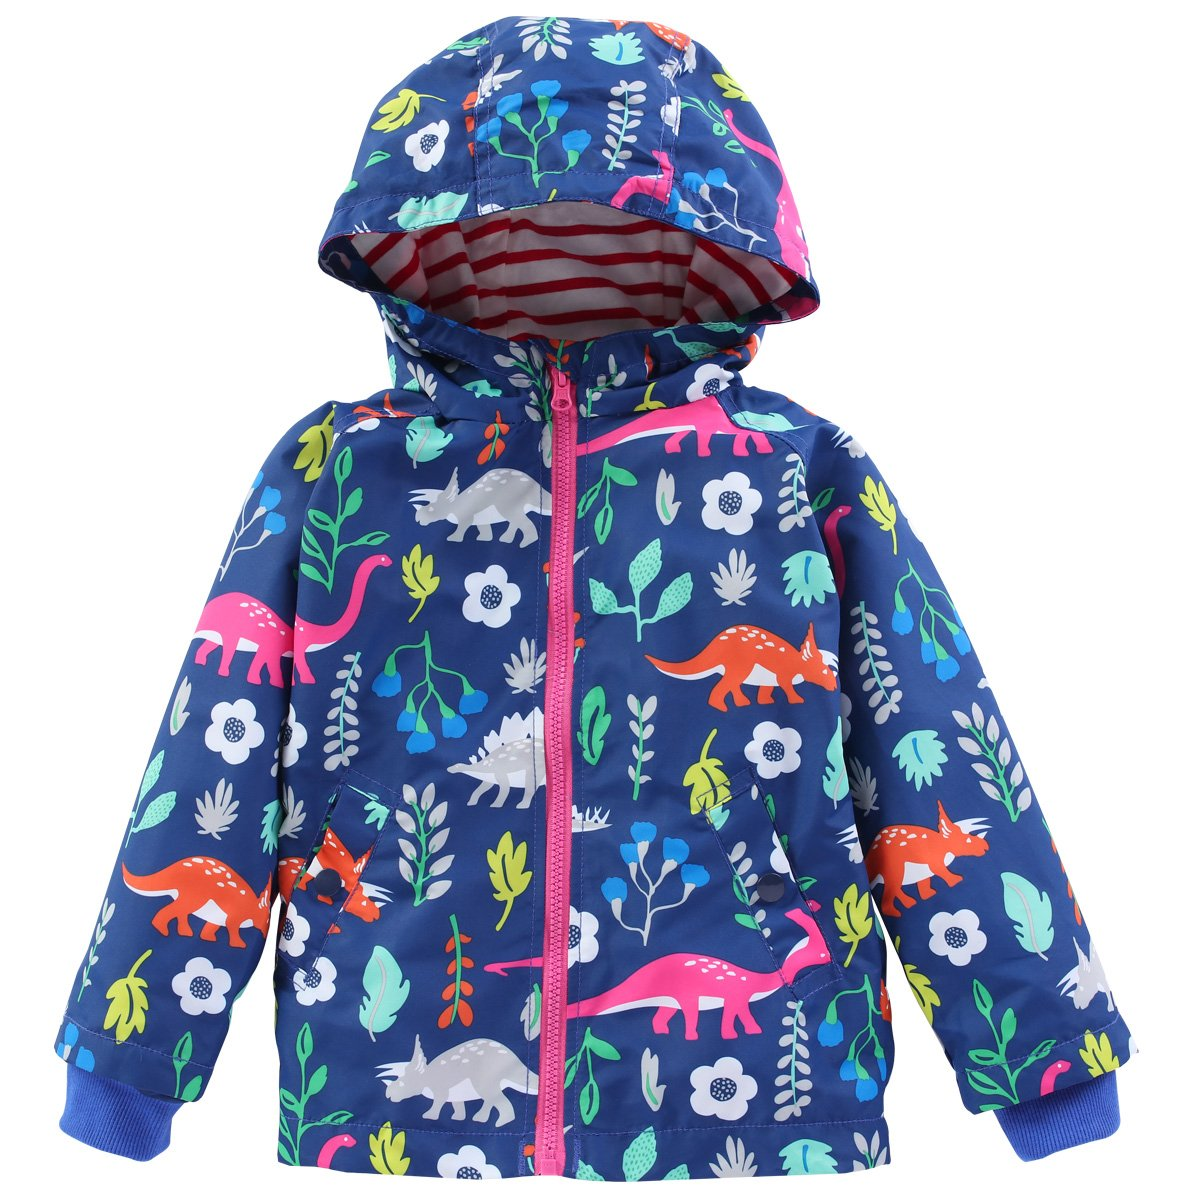 LZH Toddler Boys Waterproof Raincoat Dinosaur Hooded Jacket Coat C008